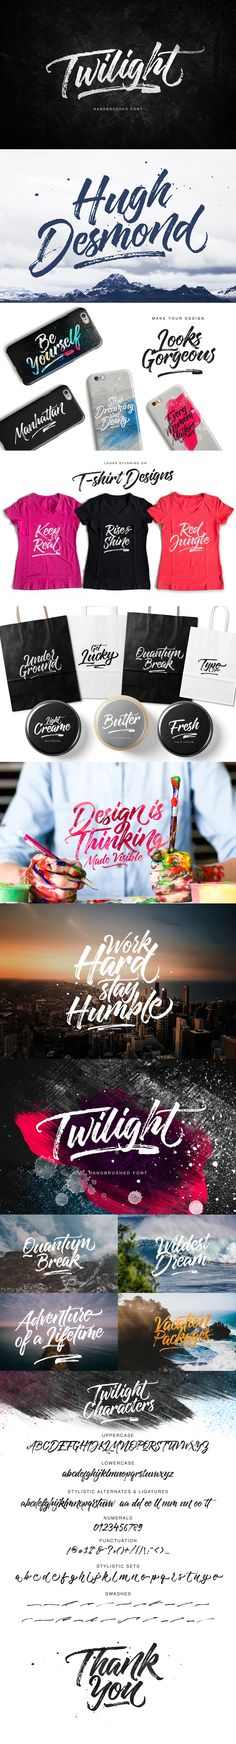 The Ultimate Creative Resources: 25 Fonts & 1273 Graphics - 99% off  https://www.pixelo.net/product/the-creative-designers-toolkit/